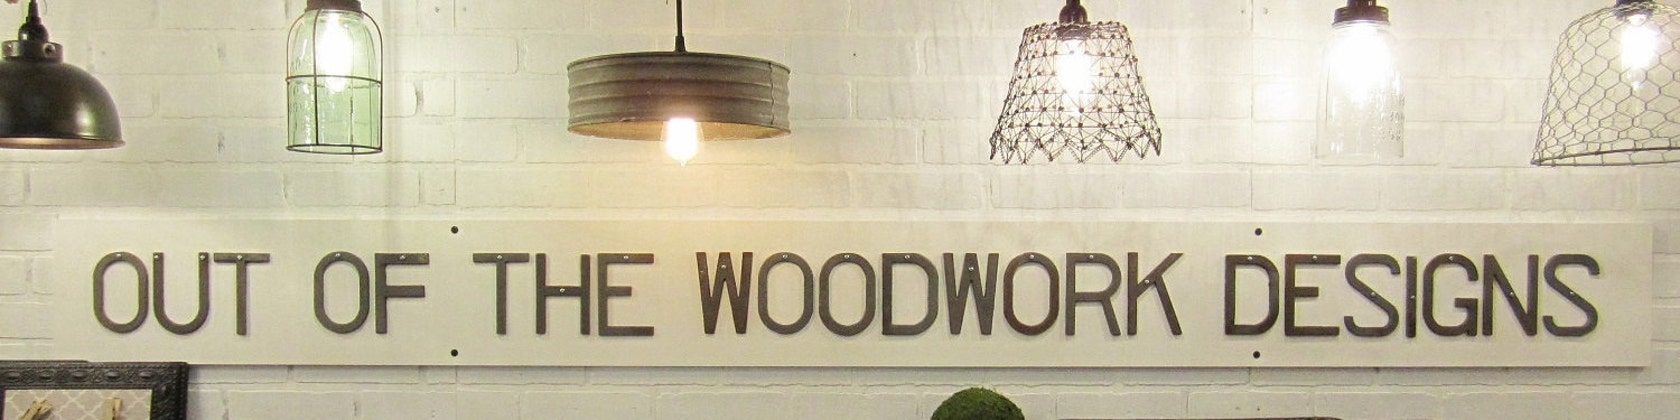 Out Of The Woodwork Designs By Outofthewdworkdesign On Etsy